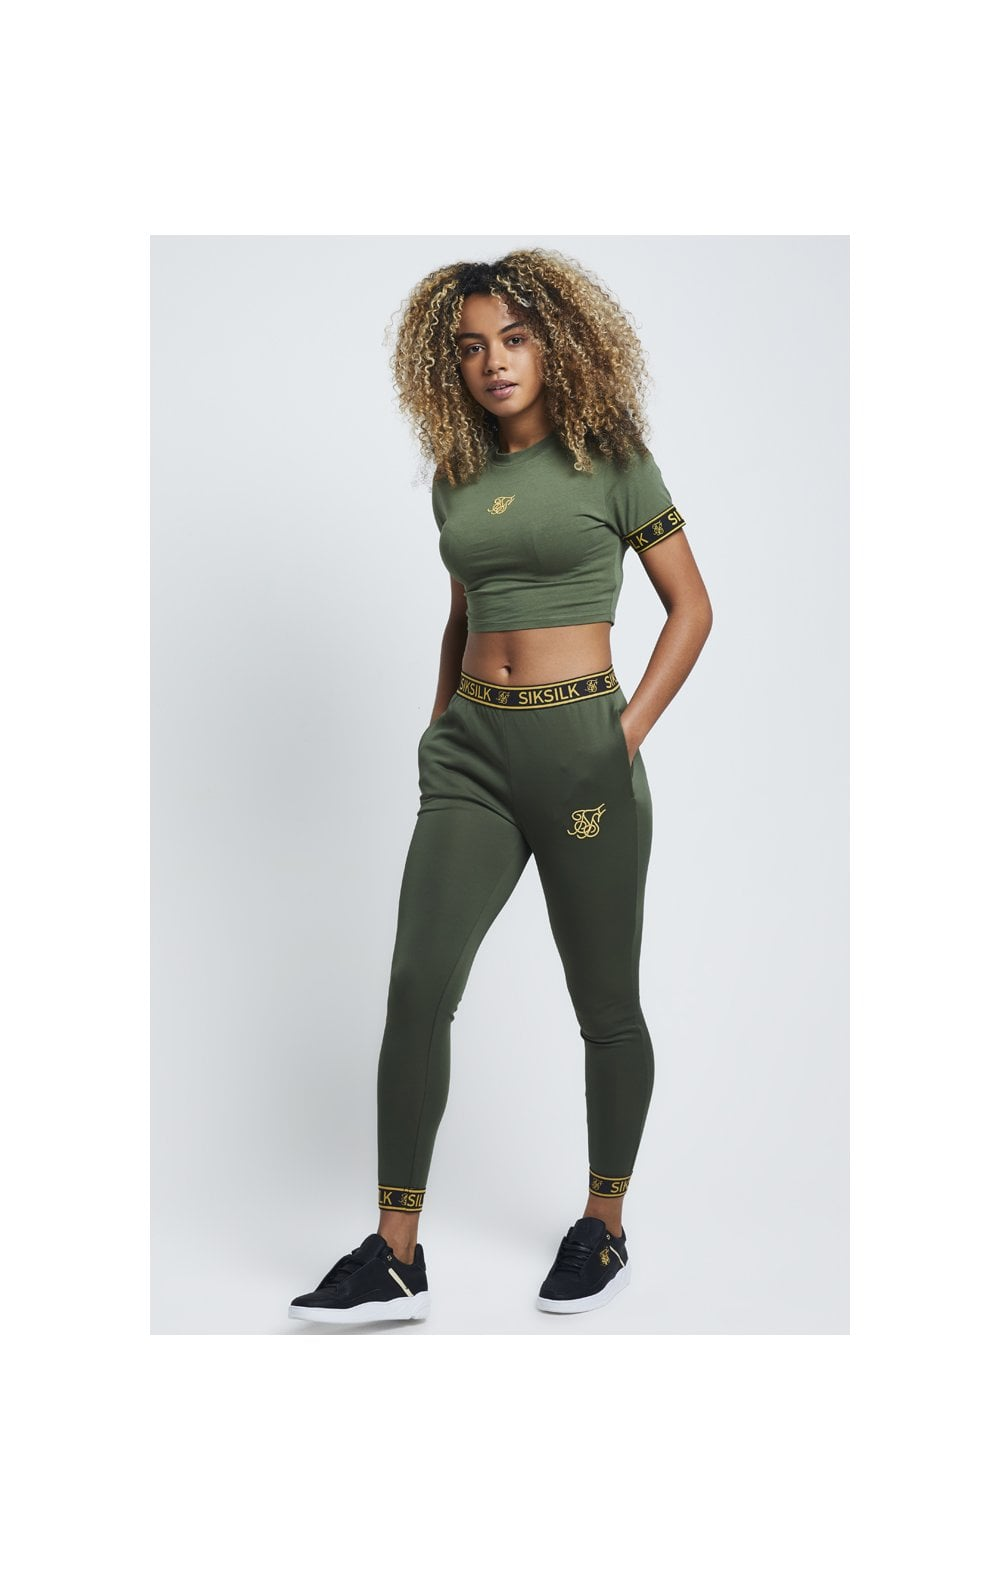 Load image into Gallery viewer, SikSilk Tape Cuff Crop Tee - Bronze Green (1)